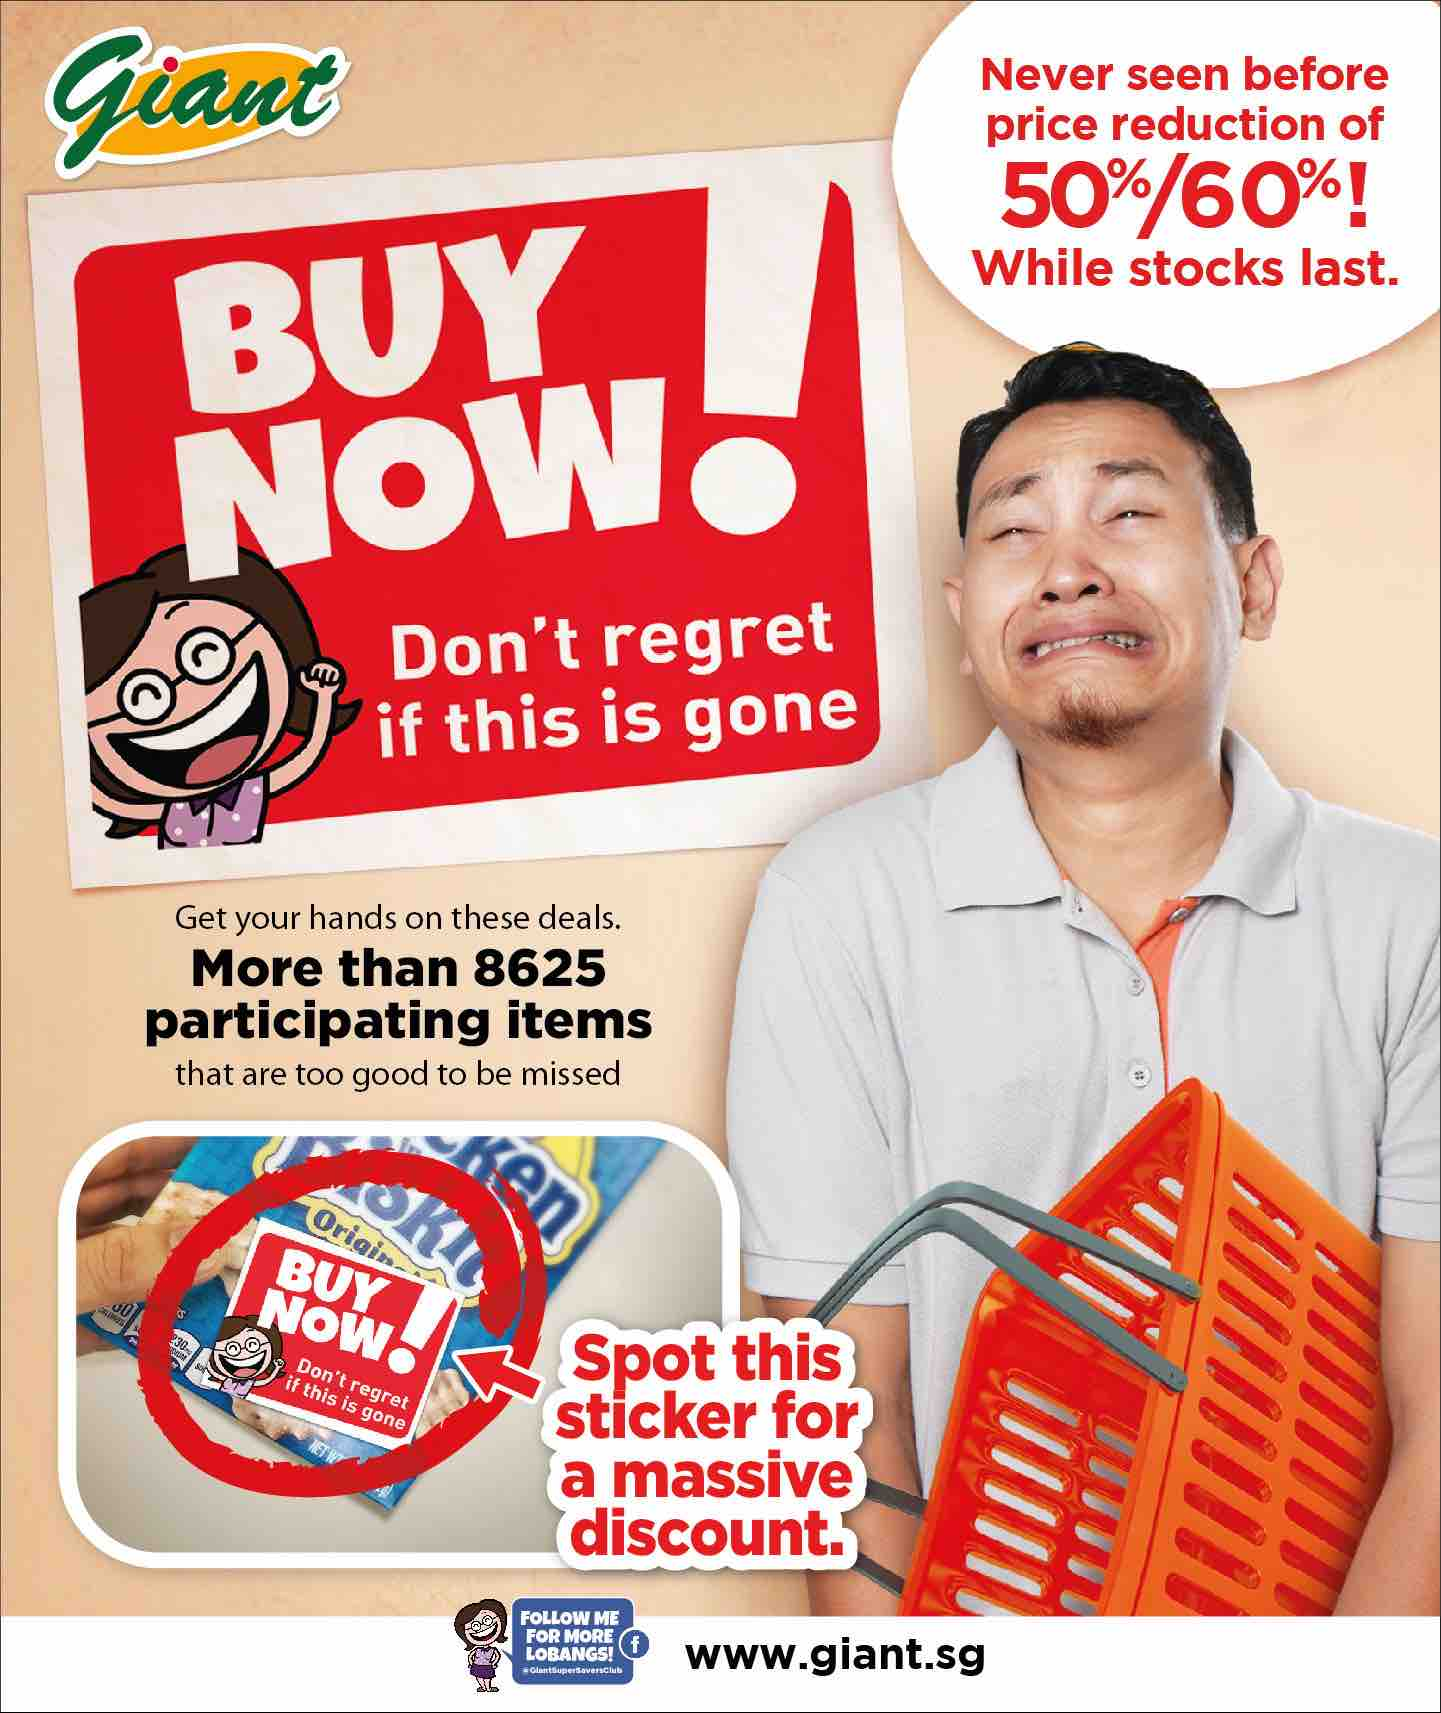 Giant Singapore Black Friday Spot the Sticker & Score 60% Off Promotion While Stocks Last | Why Not Deals 1 & Promotions